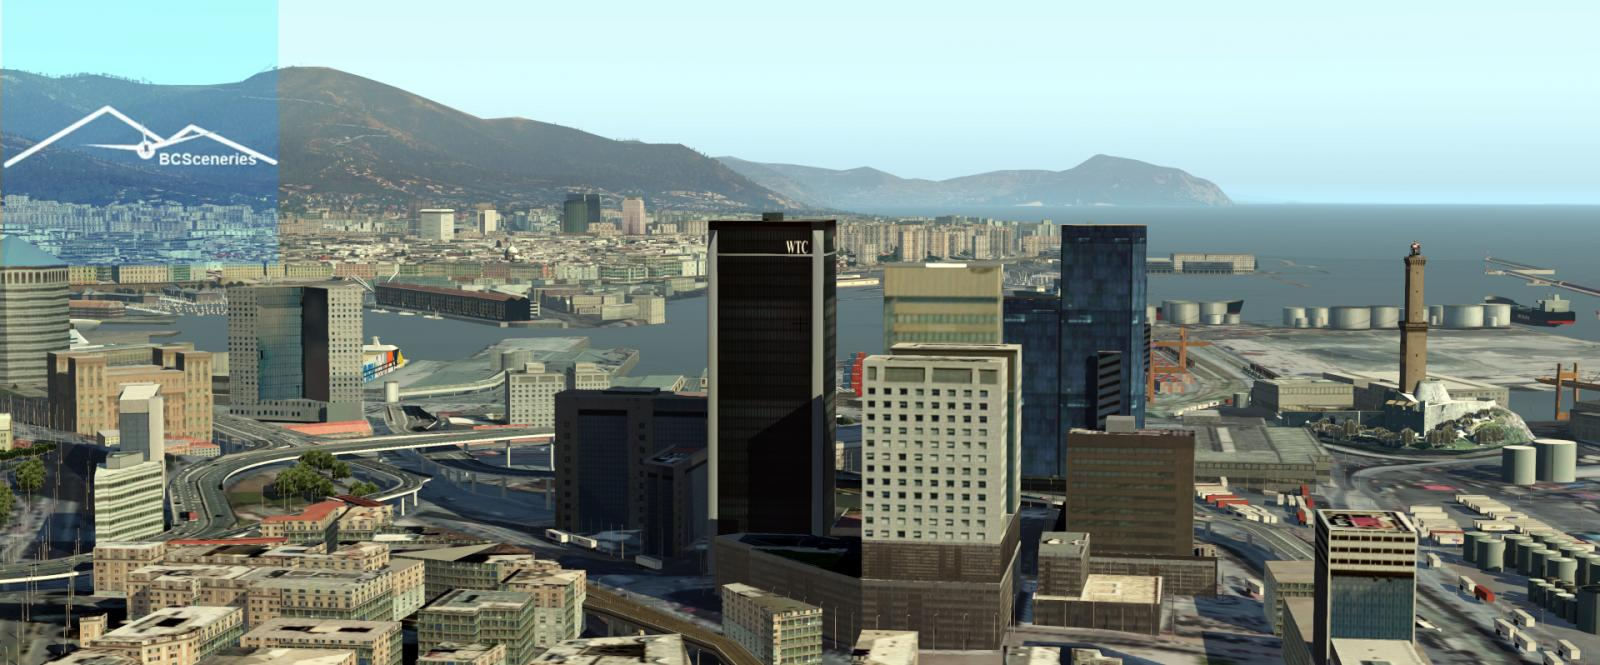 LIMJ and Genova city in northern Italy scenery for X Plane